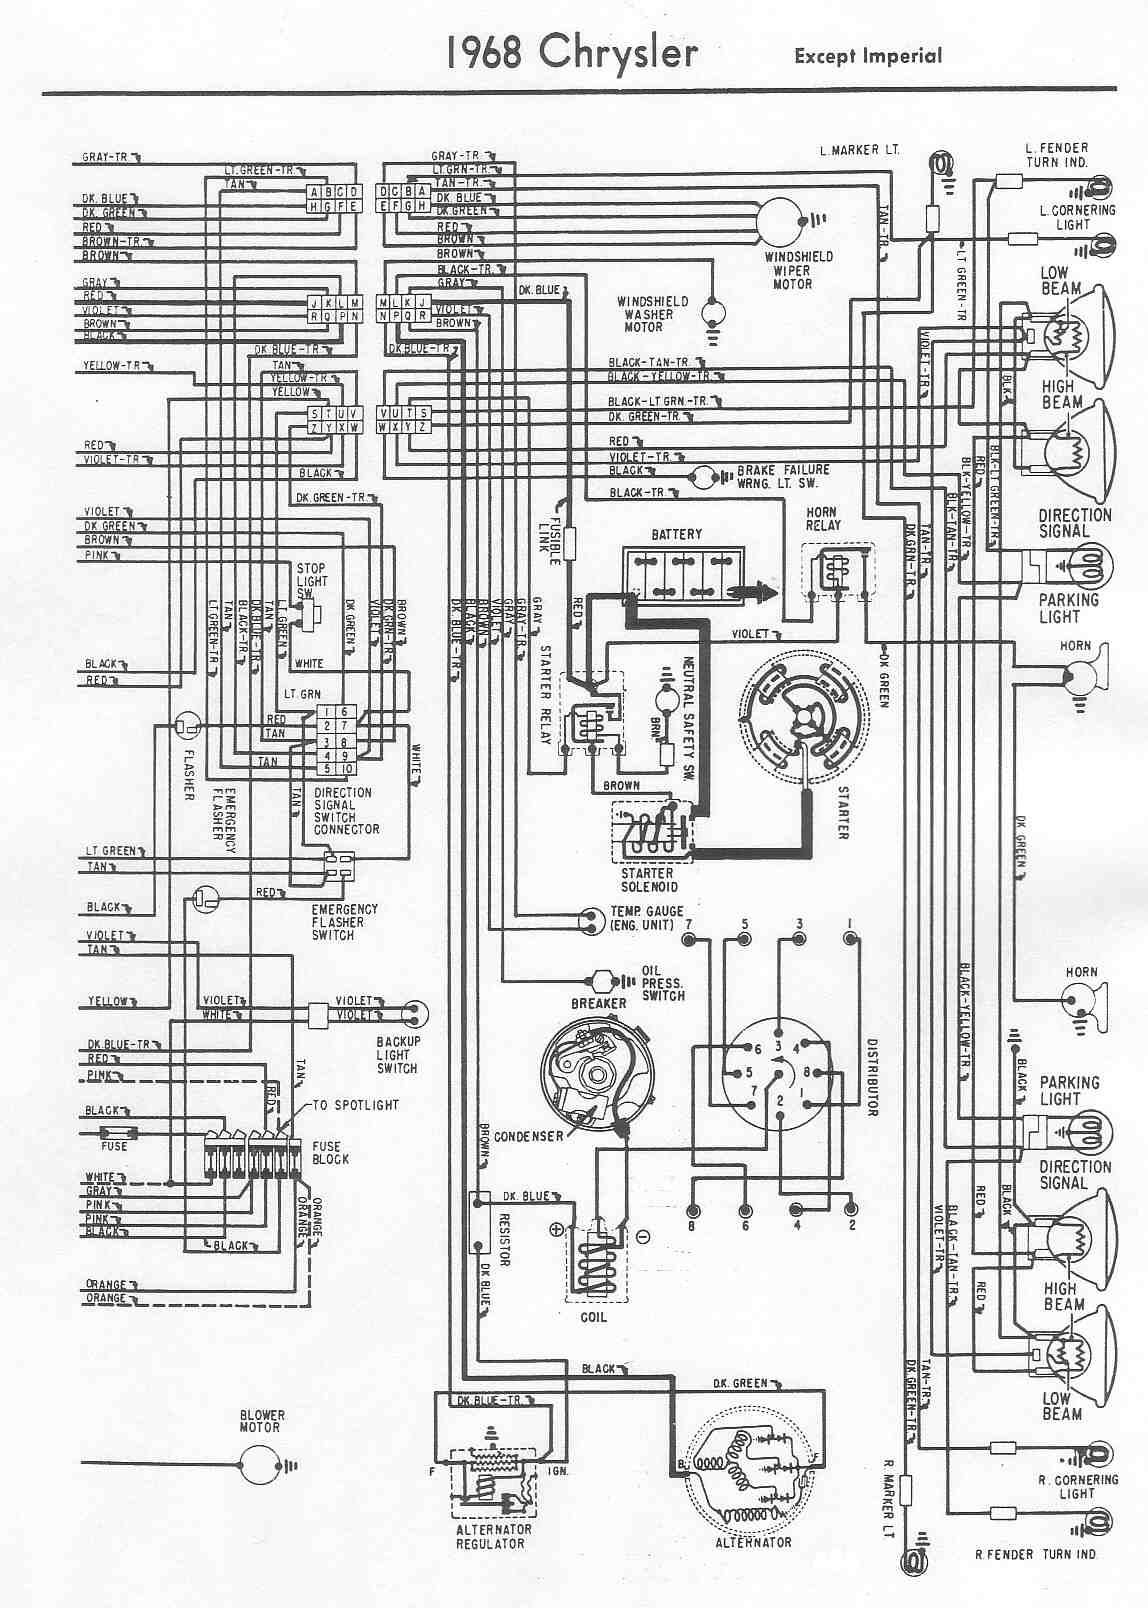 medium resolution of 68 dodge neutral safety switch wiring schematic wiring diagram68 dodge neutral safety switch wiring wiring diagram